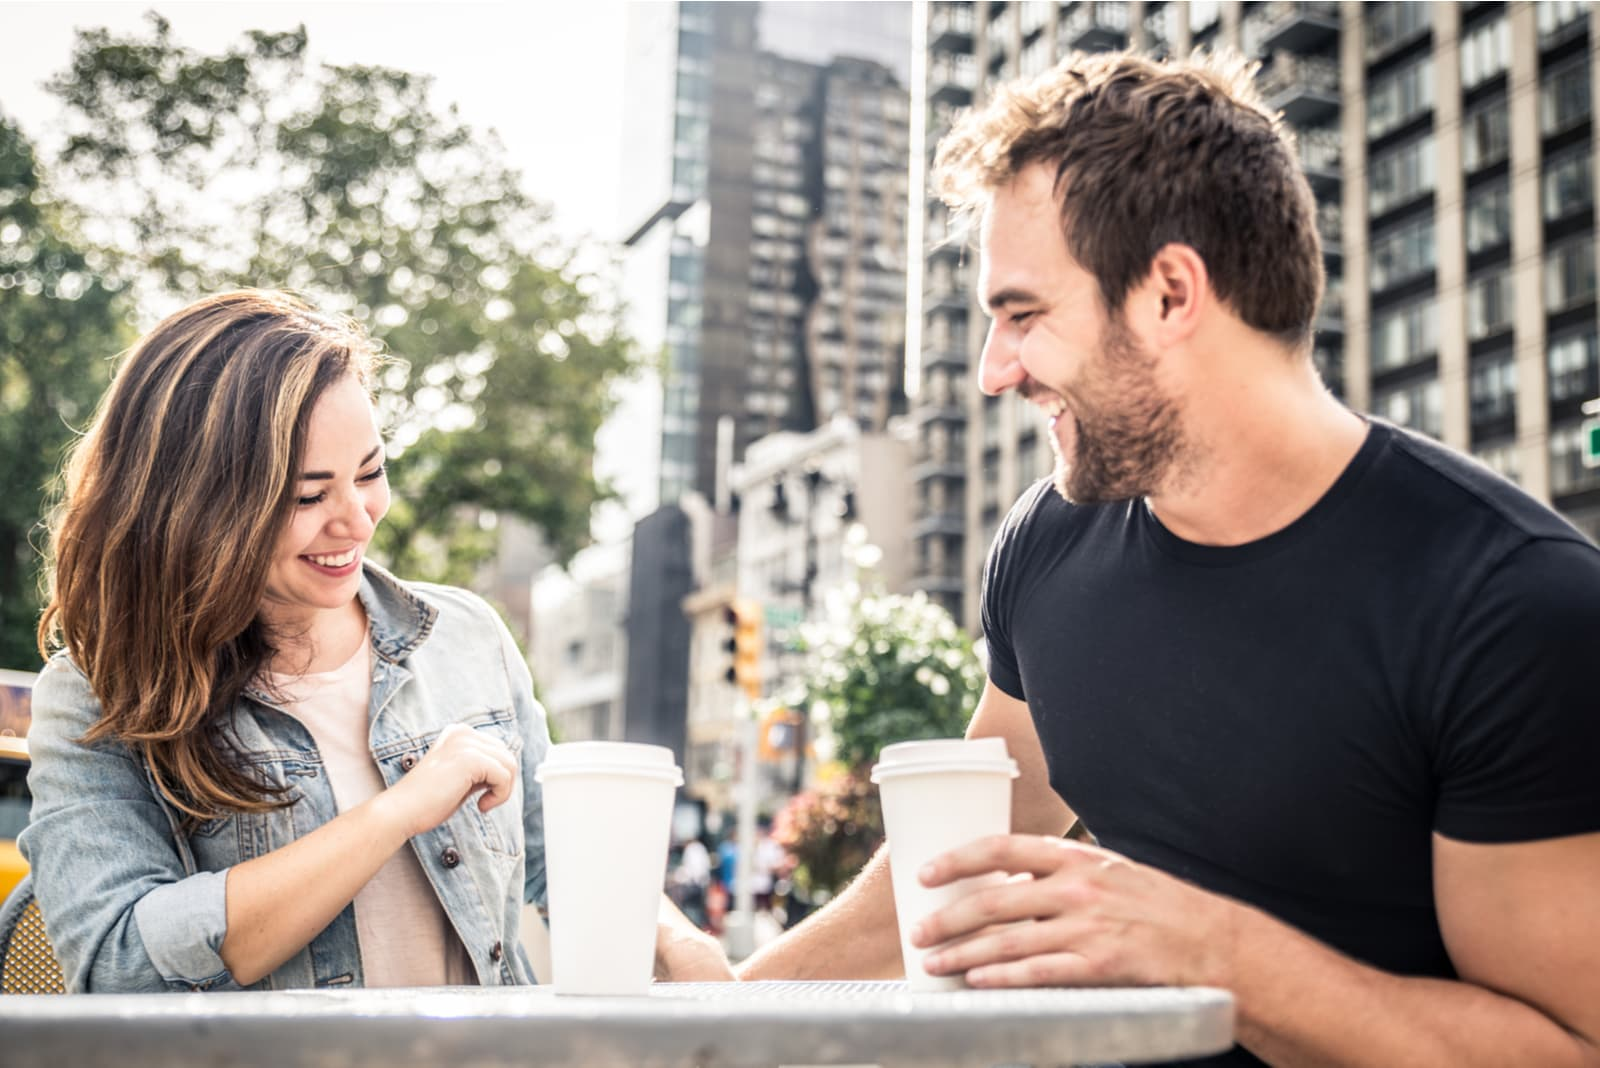 the man and woman laugh as they talk